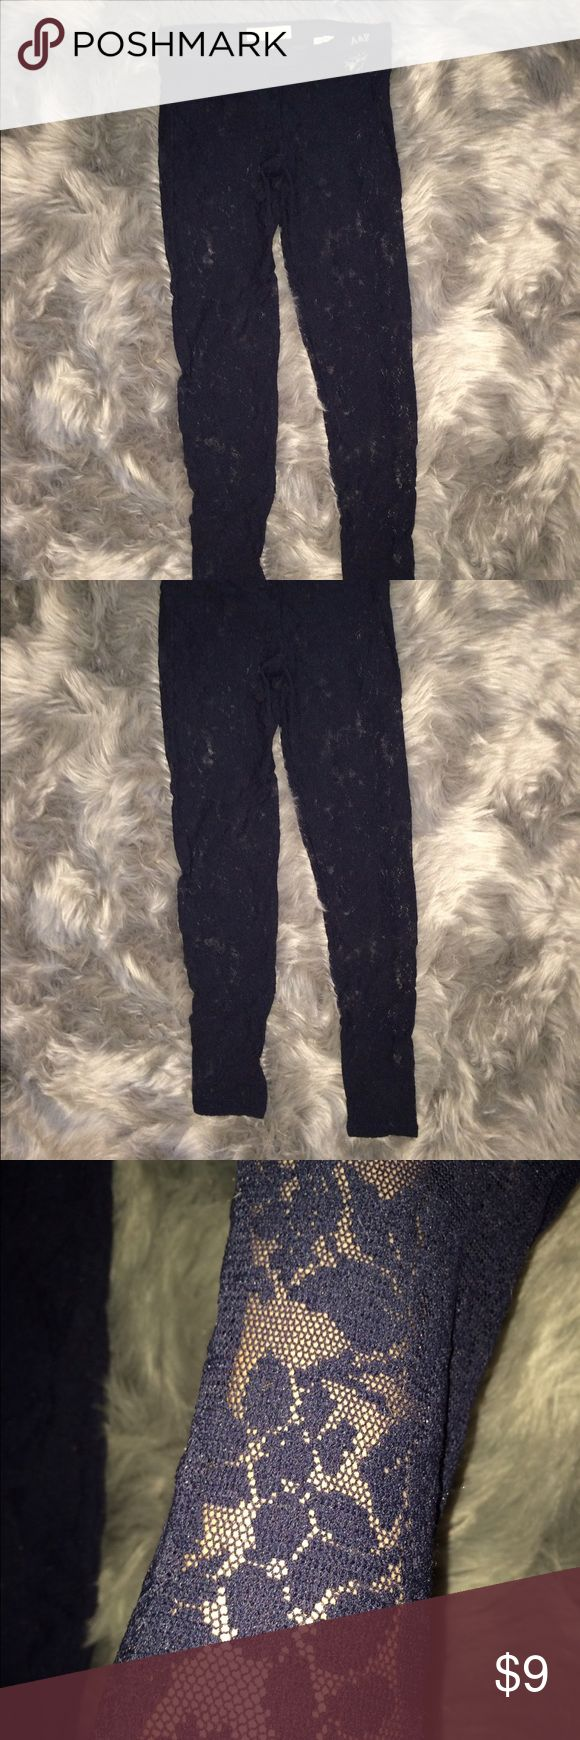 Lacy leggings navy blue Abercrombie and Fitch lace leggings. Free gift with every purchase, bundles are encouraged! Pants Leggings